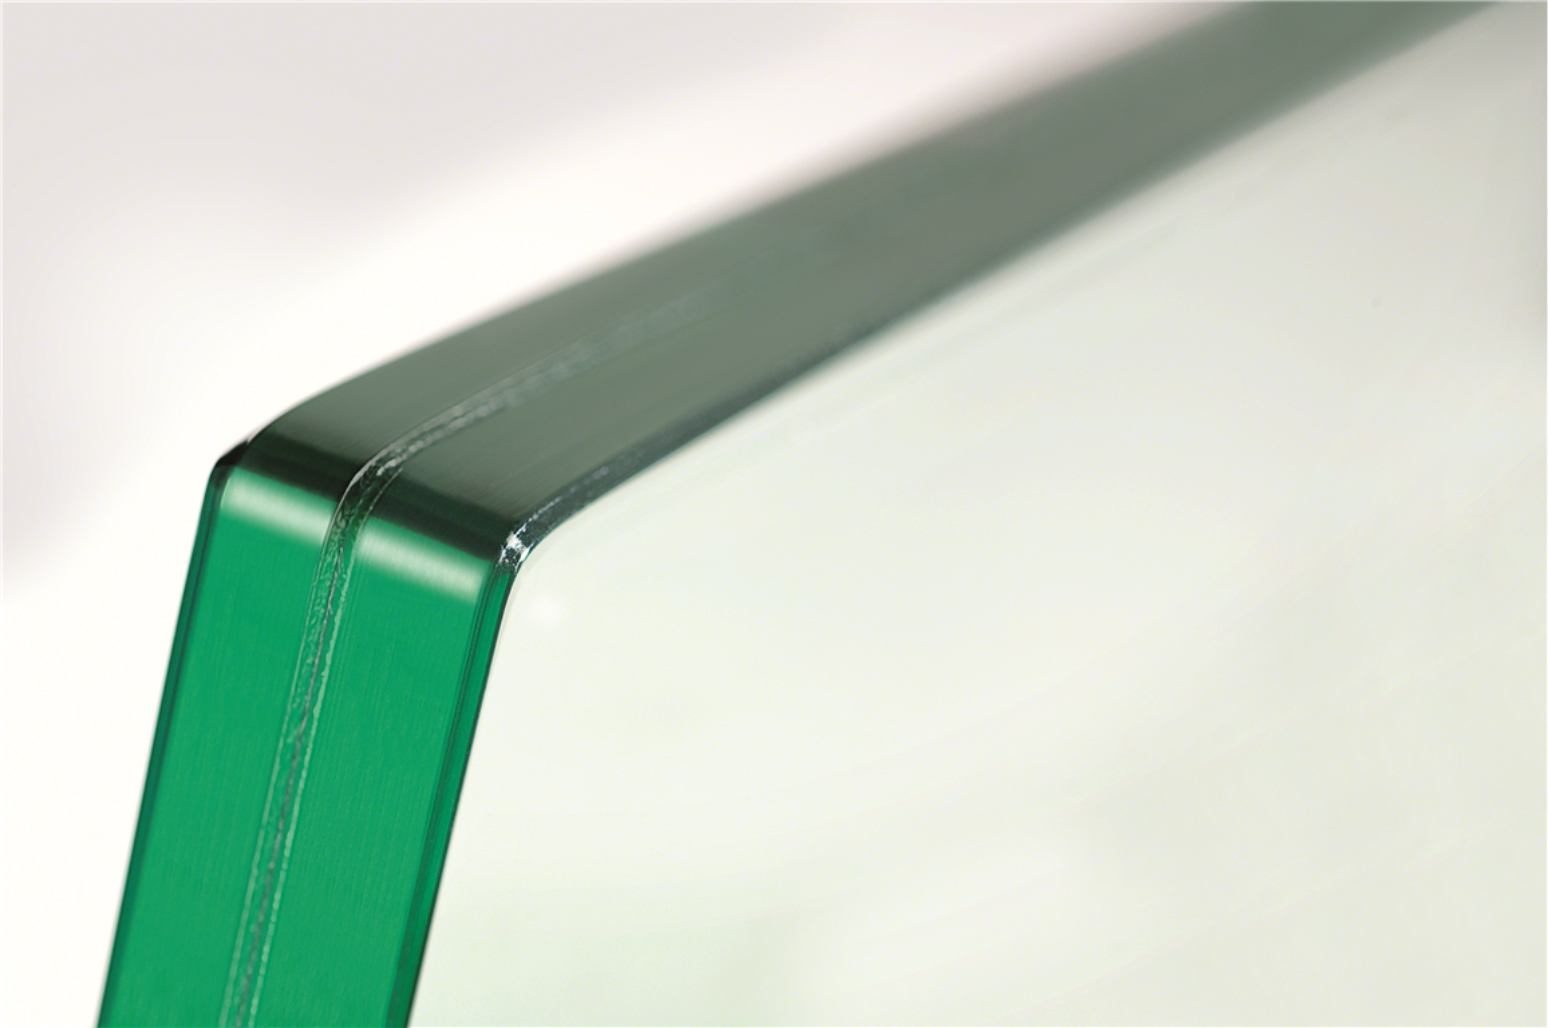 Glass services: cutting, polishing, drilling, sandblasting ...